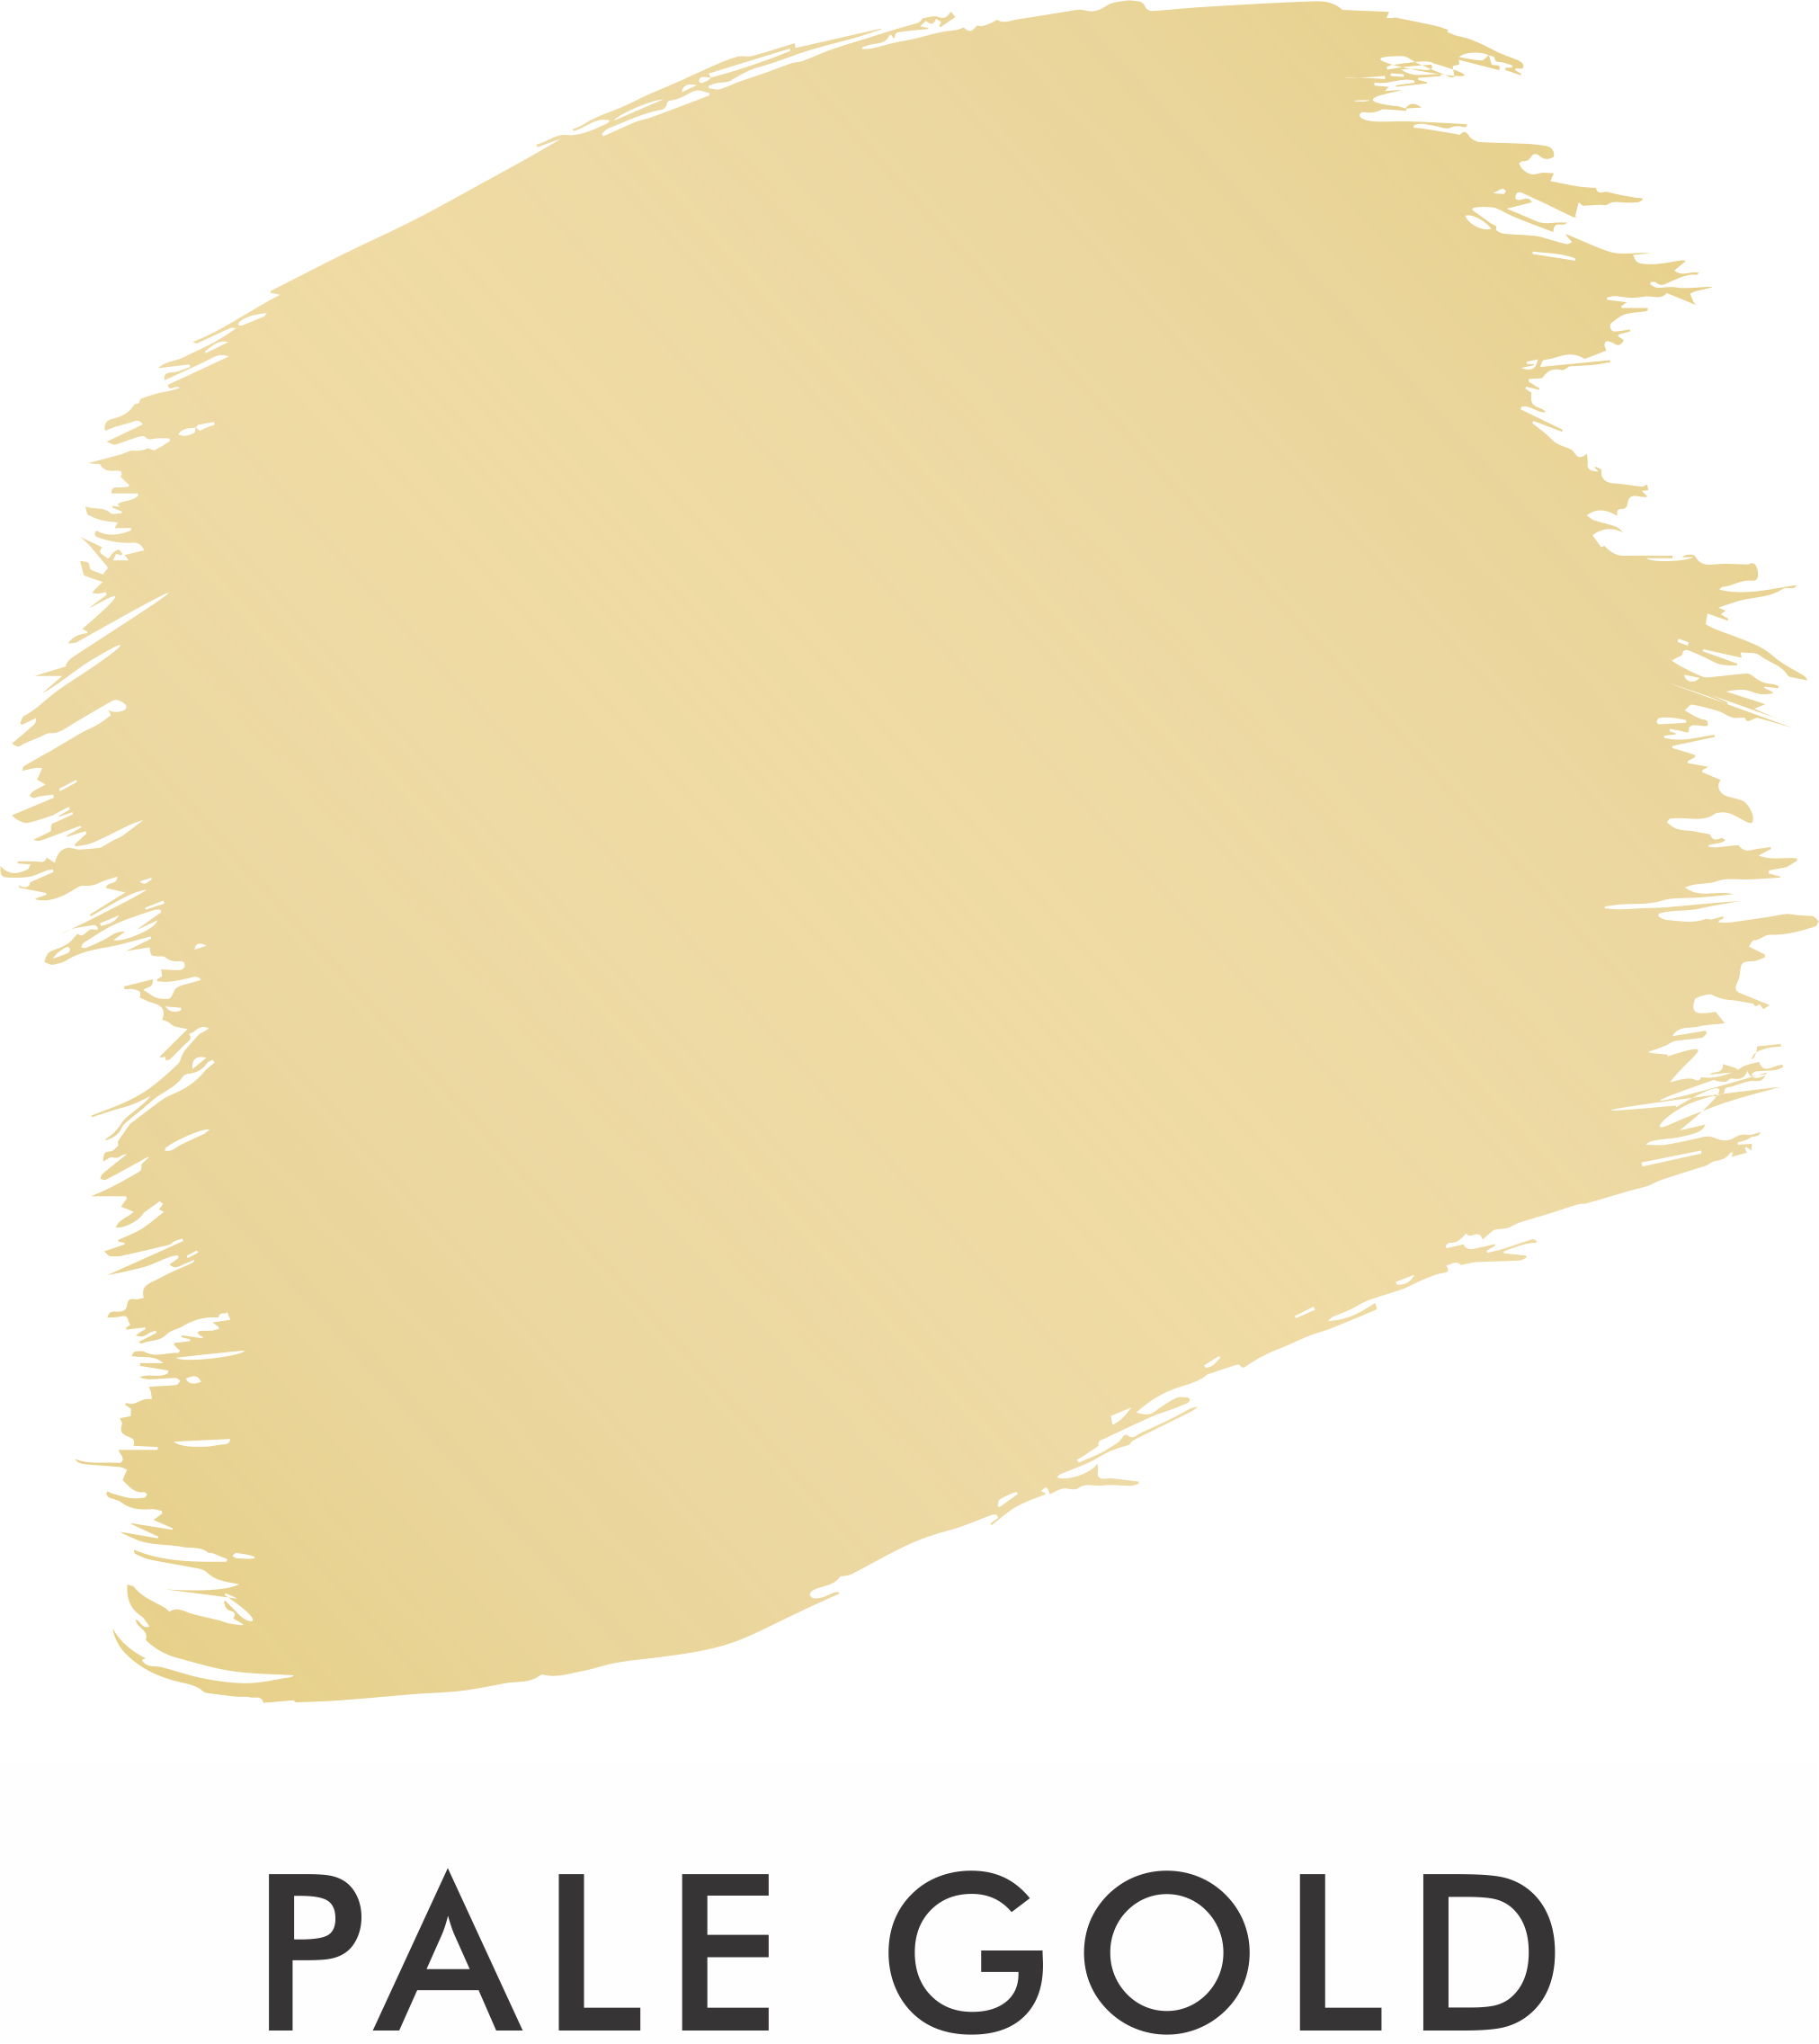 PALE GOLD.png